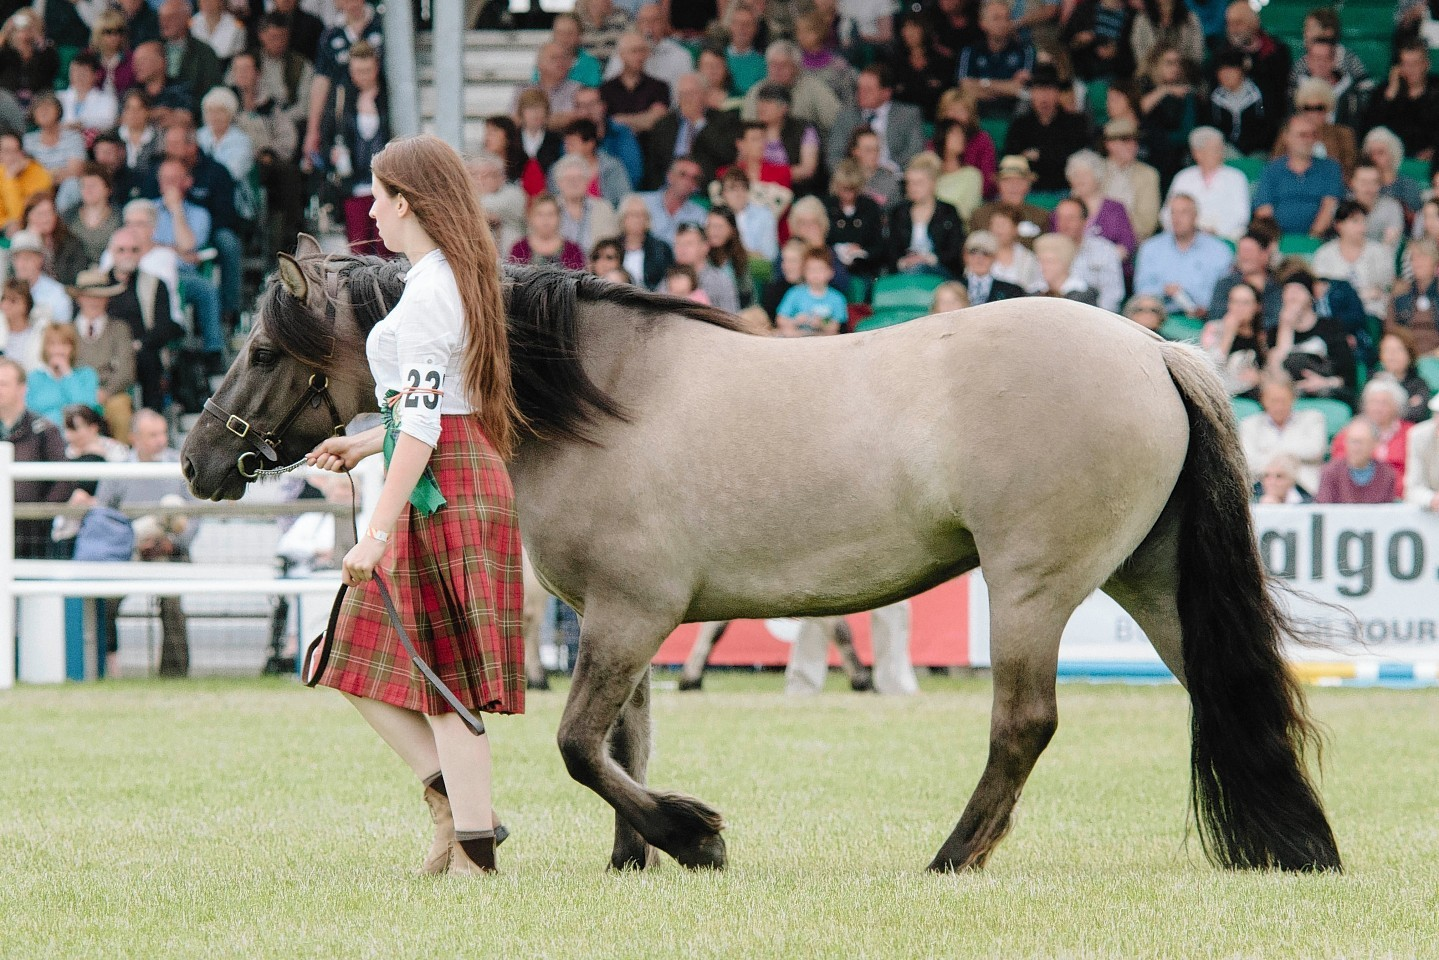 Looking back on the Royal Highland show